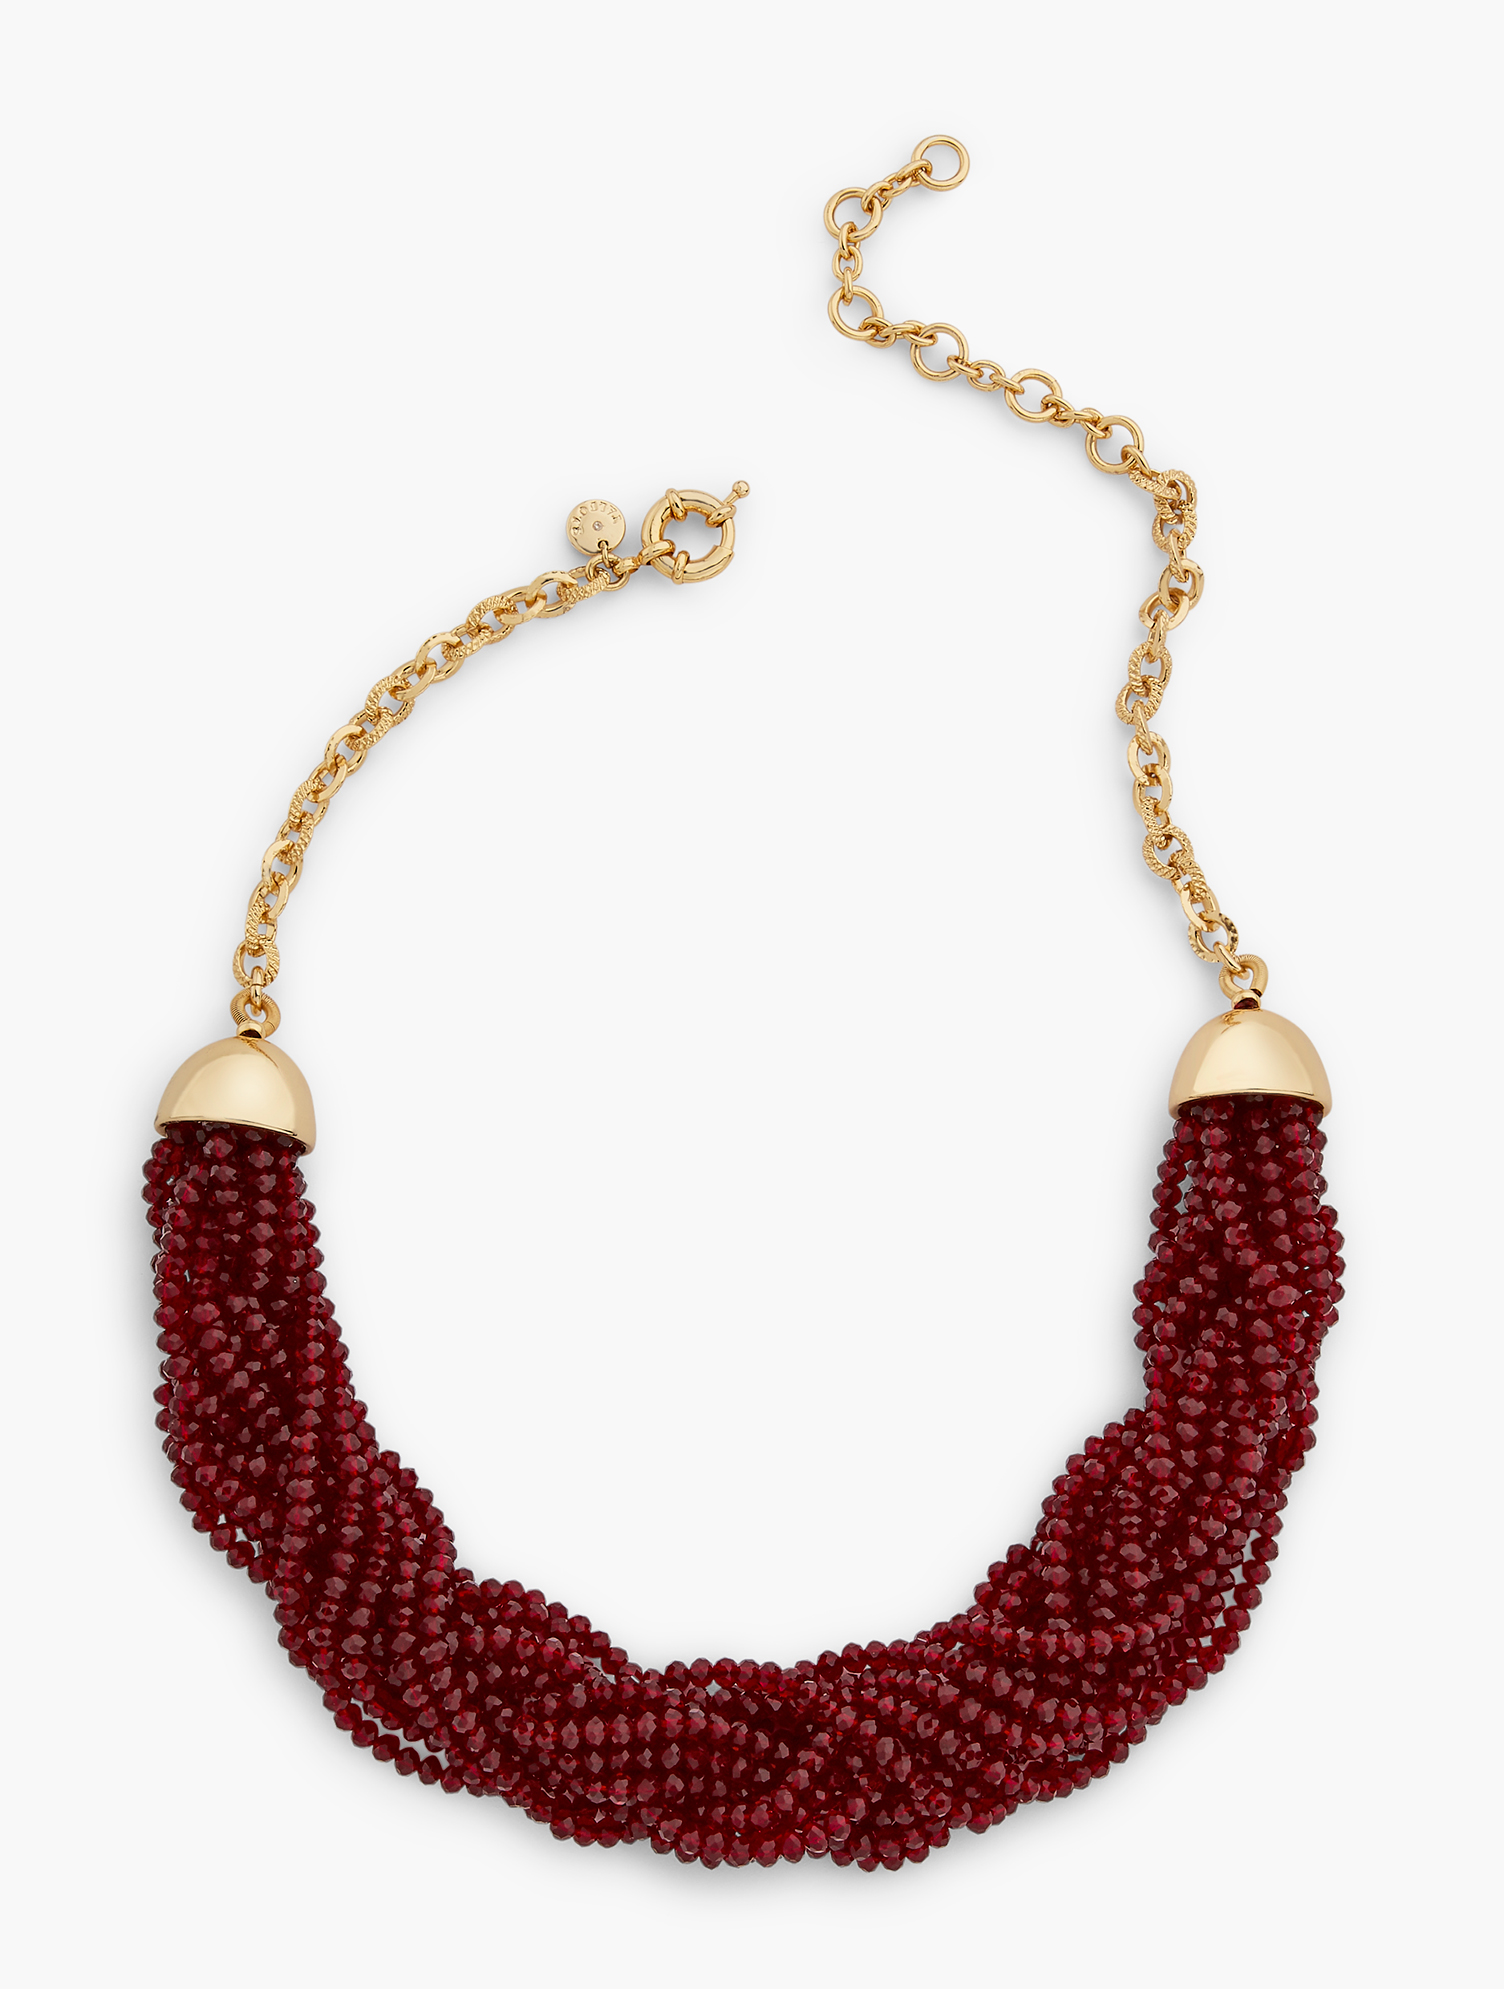 A torsade twist is at the heart of the statement necklace of the season. Features Clasp: Lobster Imported Fit: 20 inches + 3 inches Extender Material: 40% Zinc, 50% Glass, 9% Brass, 1% CZ Red Pop Torsade Necklace - Red/Gold - 001 Talbots